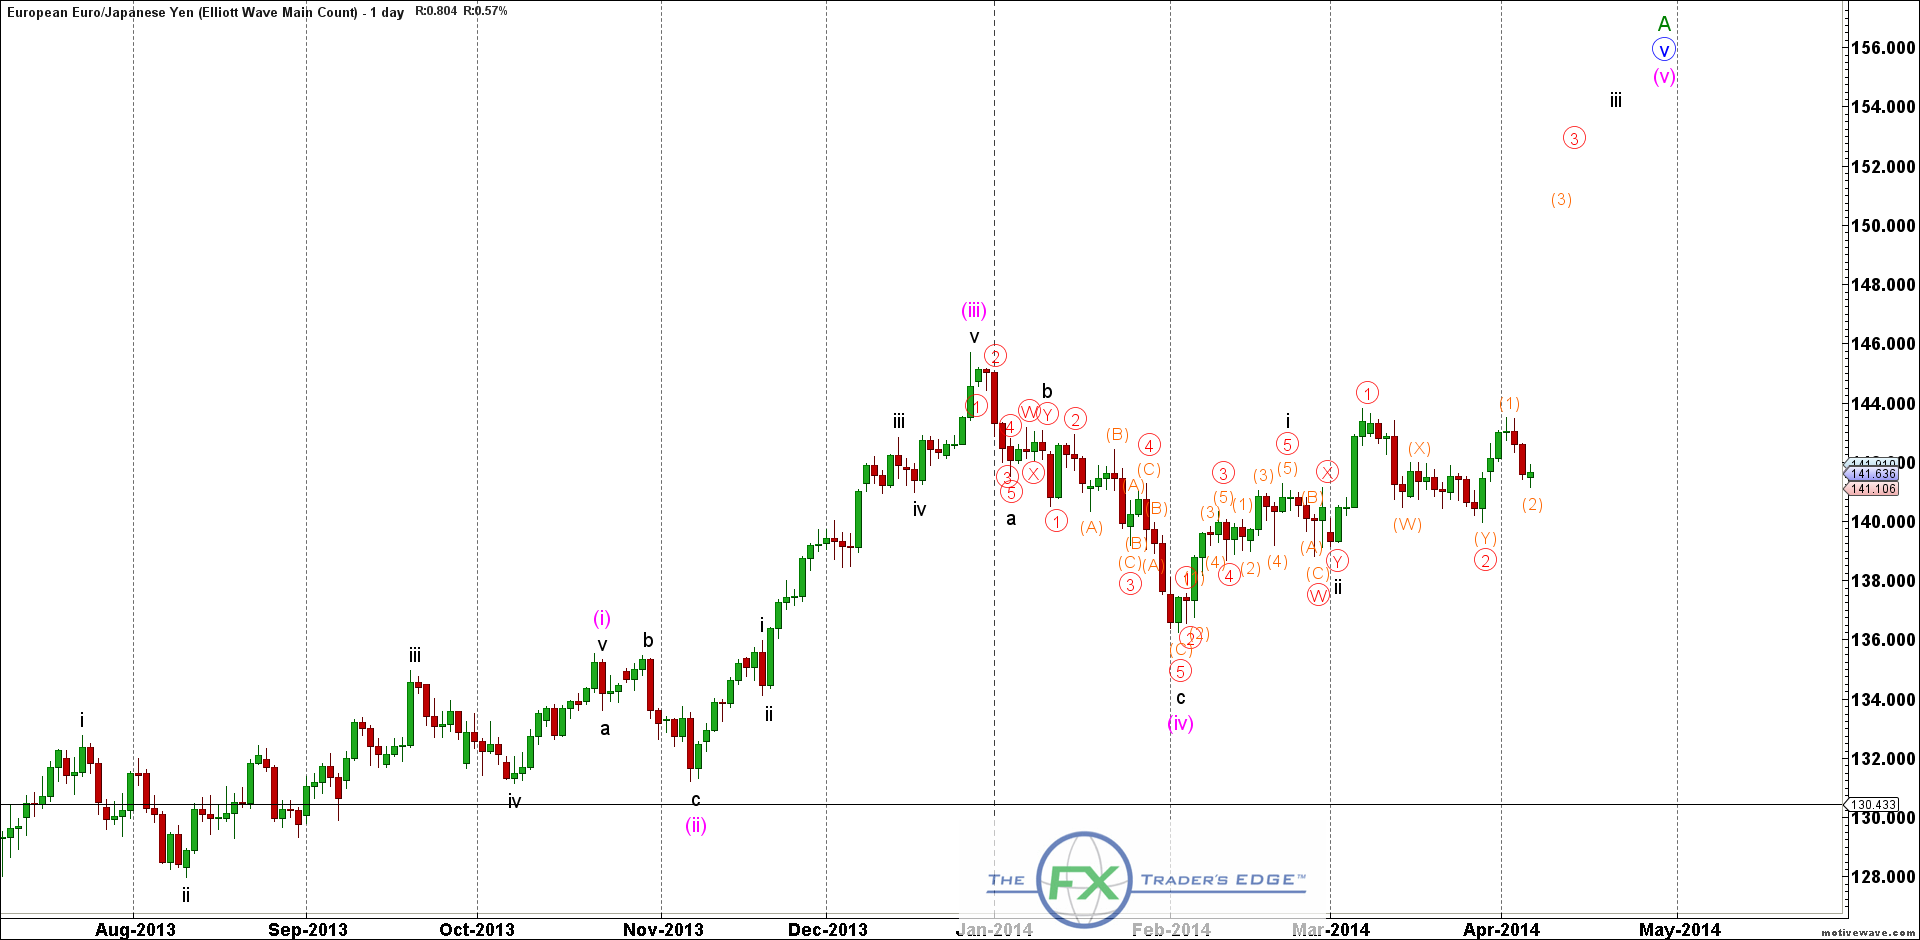 EURJPY-Elliott-Wave-Main-Count-Apr-07-1121-AM-1-day